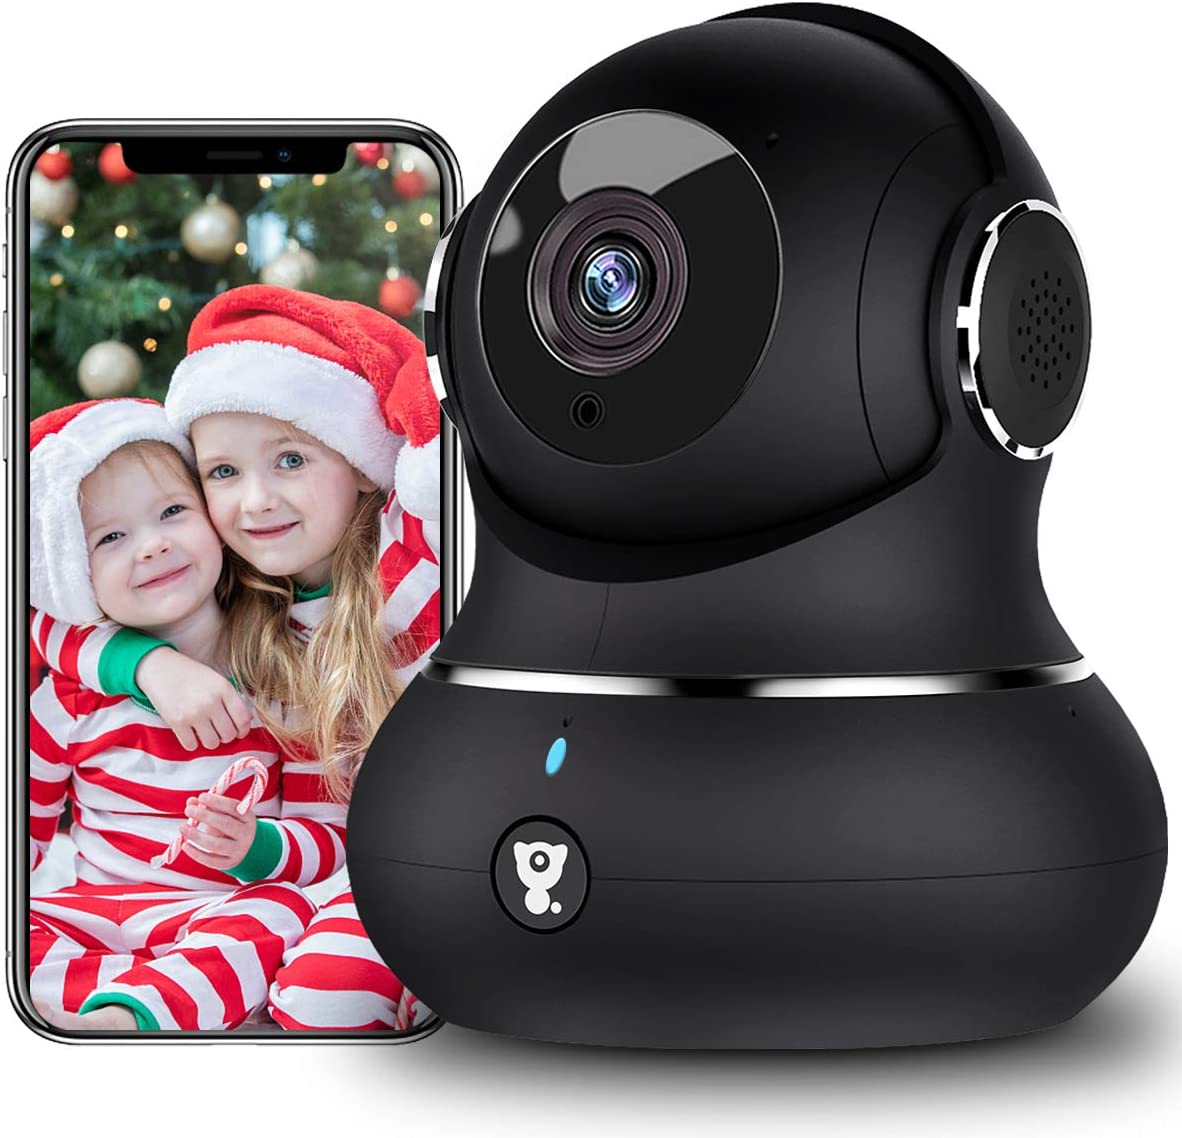 [Updated Version] Indoor Home Security Camera, Littlelf 1080p 2.4G WiFi Camera with Smart Motion Tracking Detection, 2-Way Audio, Night Vision and Cloud Service, Compatible with Alexa (Black)